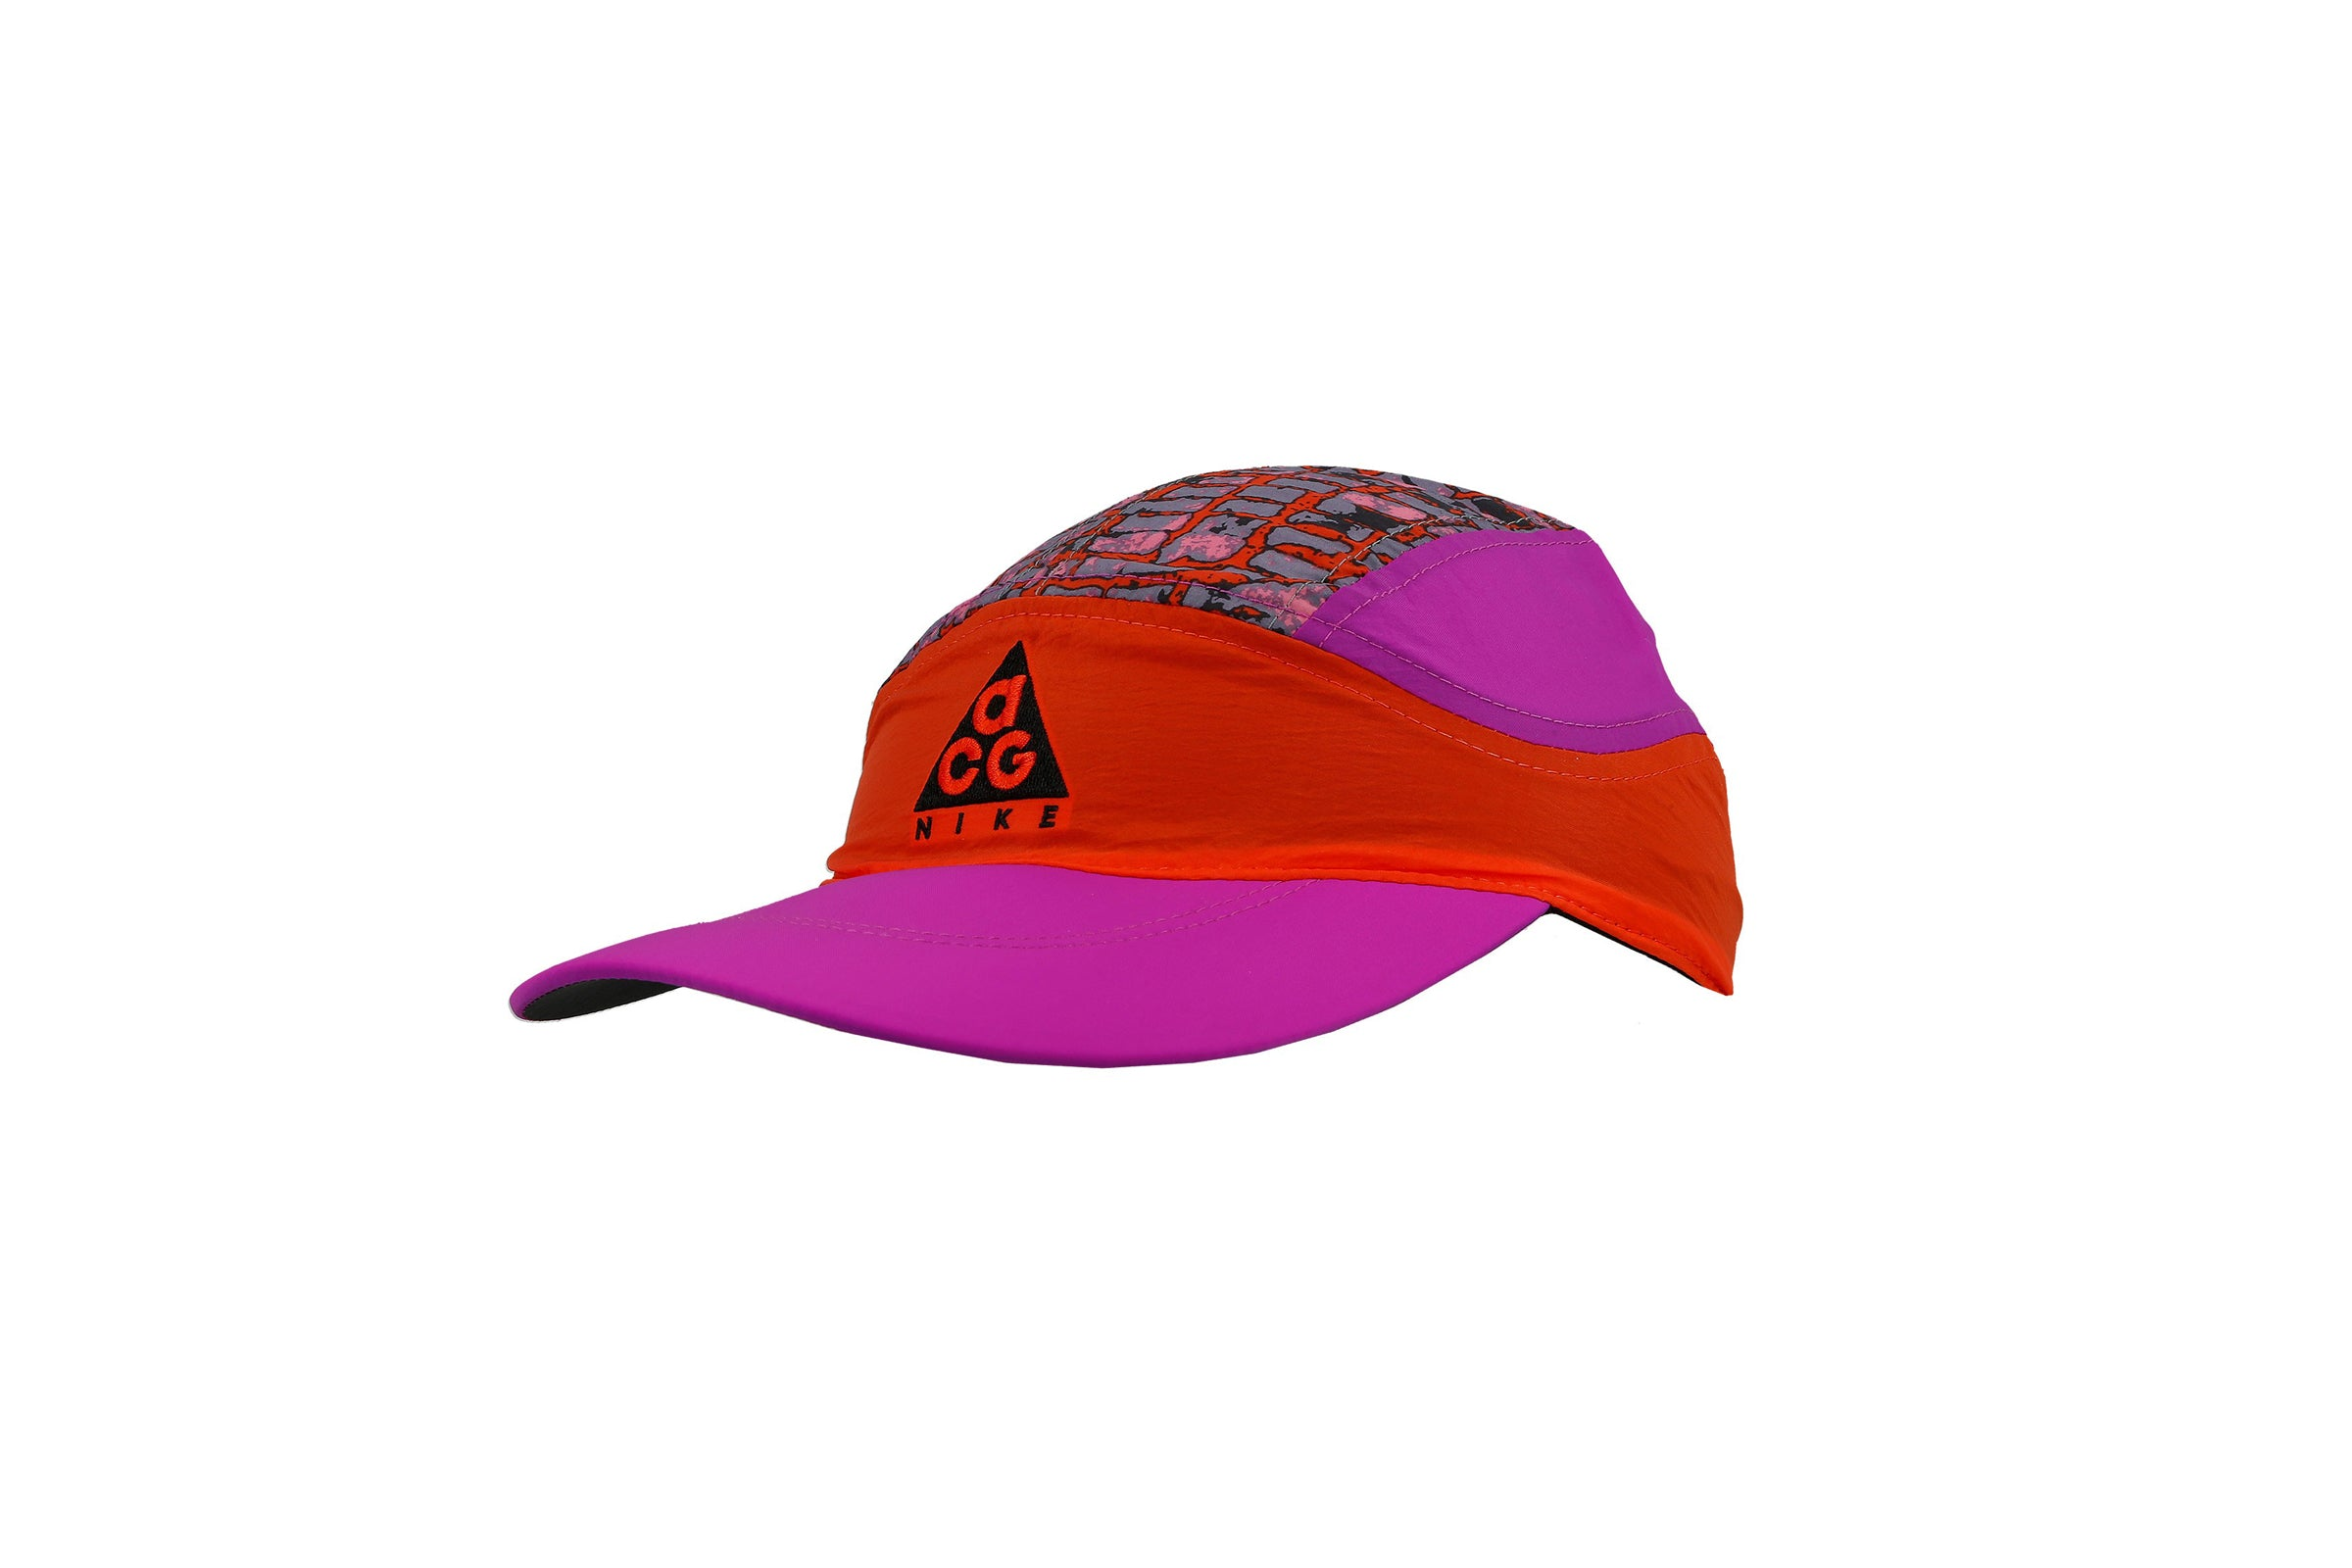 low priced 970e7 a5d9d Nike NRG ACG Tailwind Cap